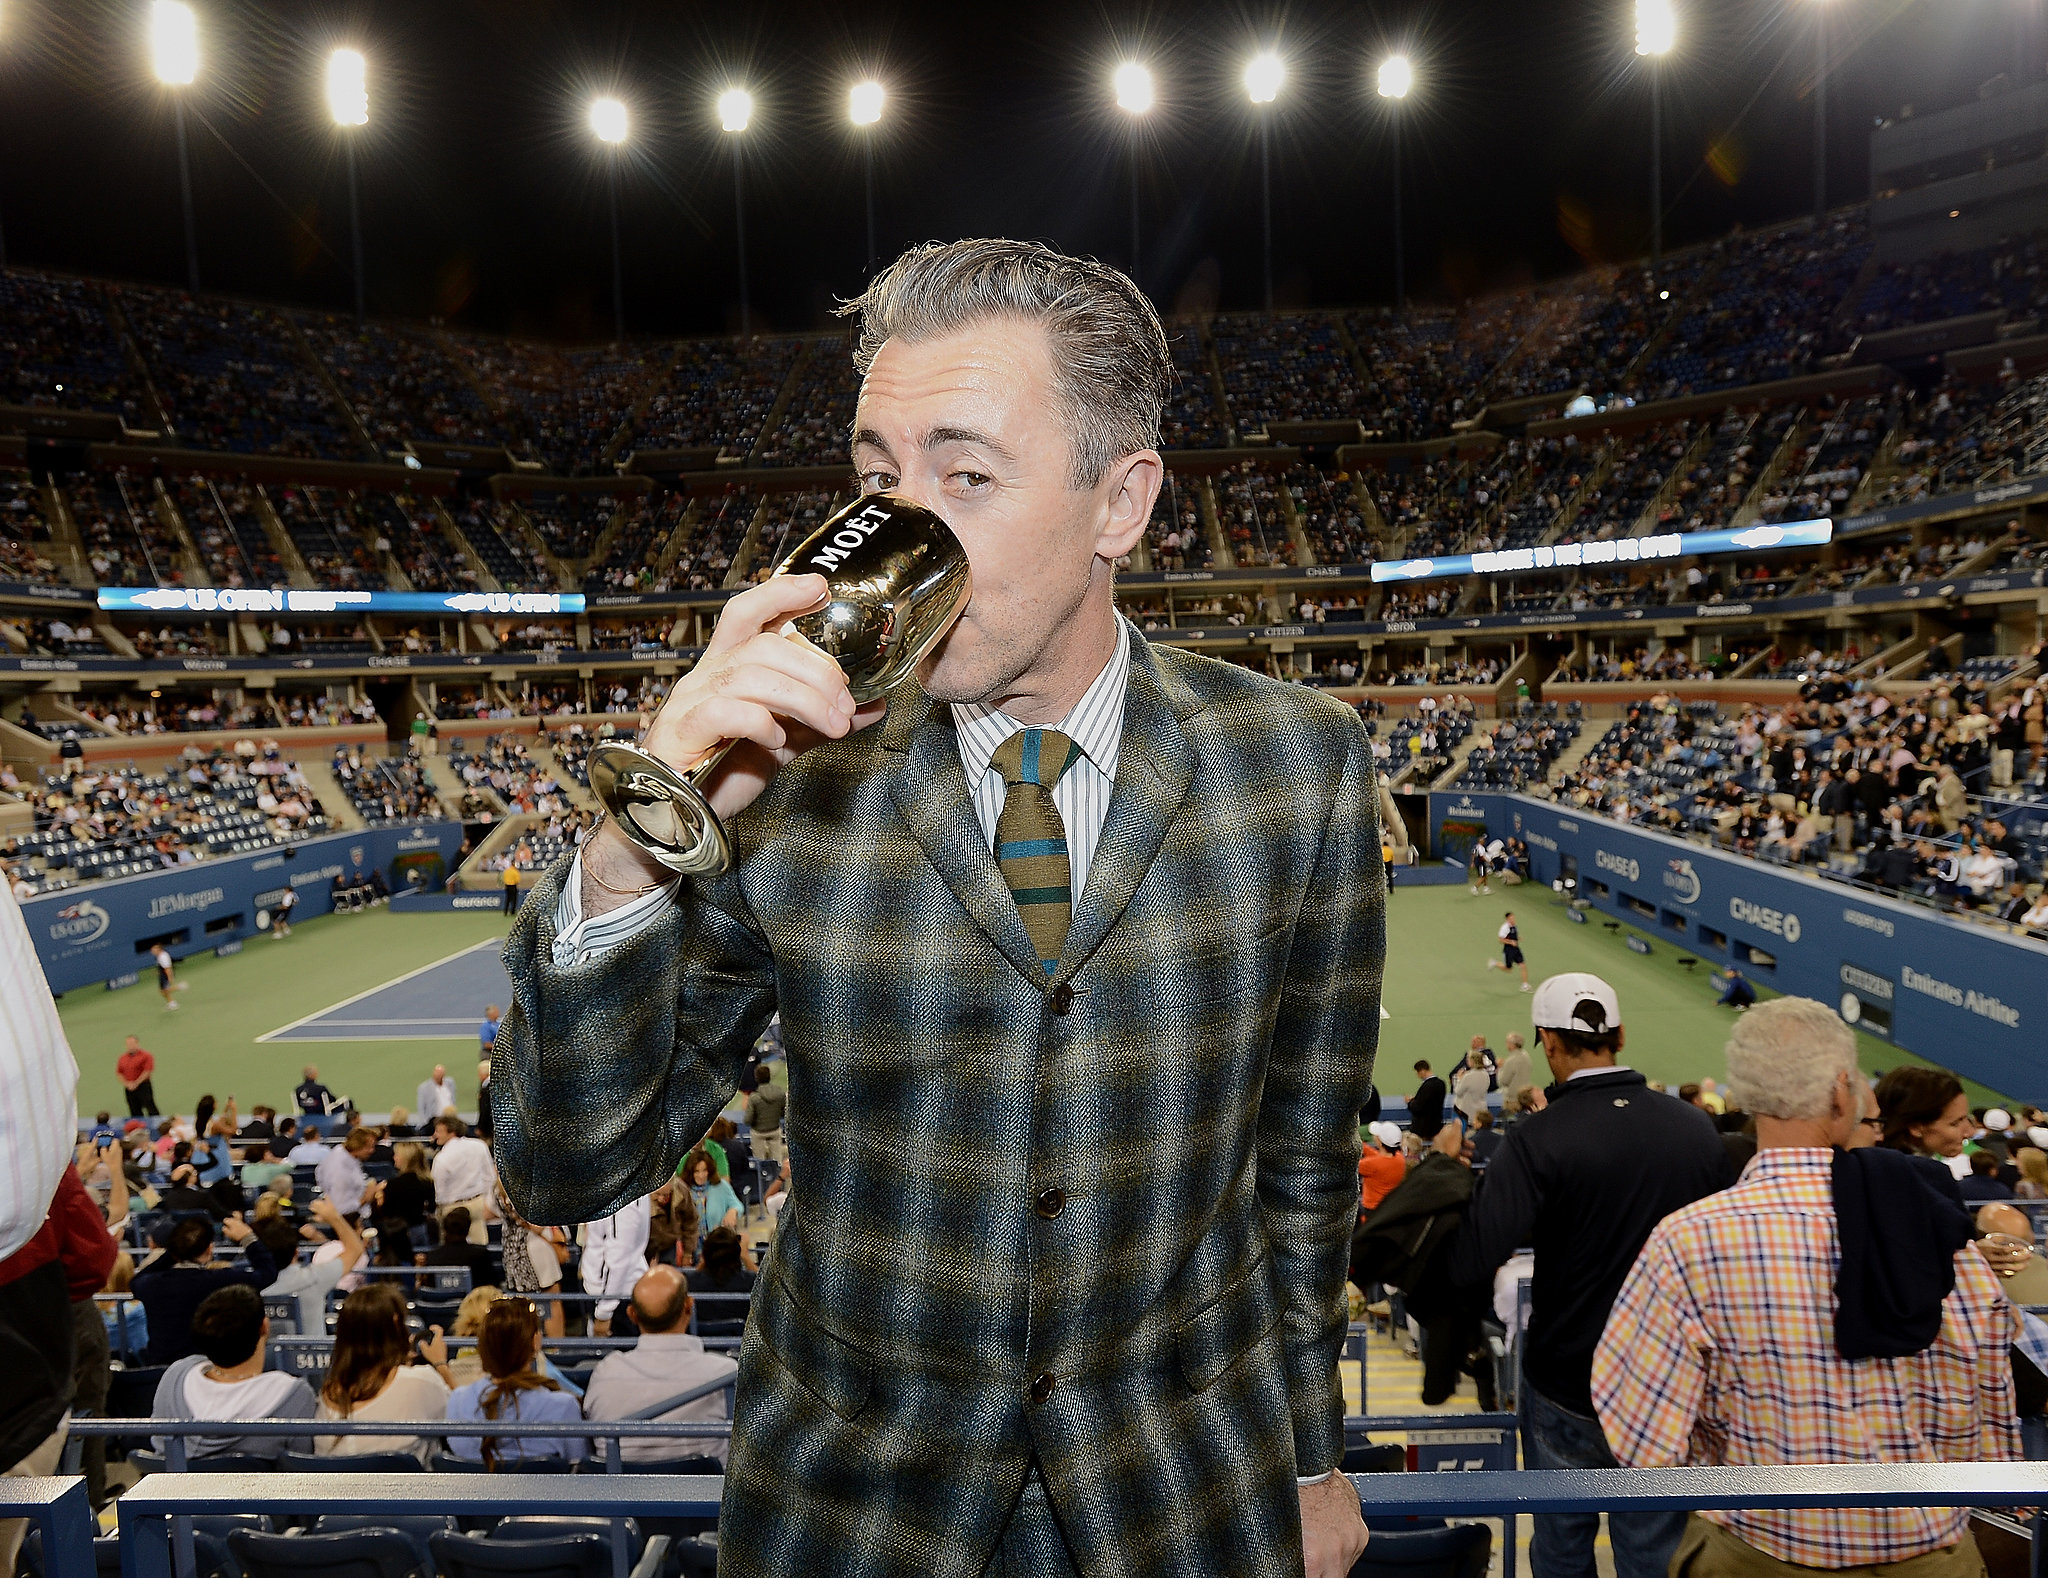 Alan Cumming looked dapper in a plaid suit to indulge in a beverage at the US Open.